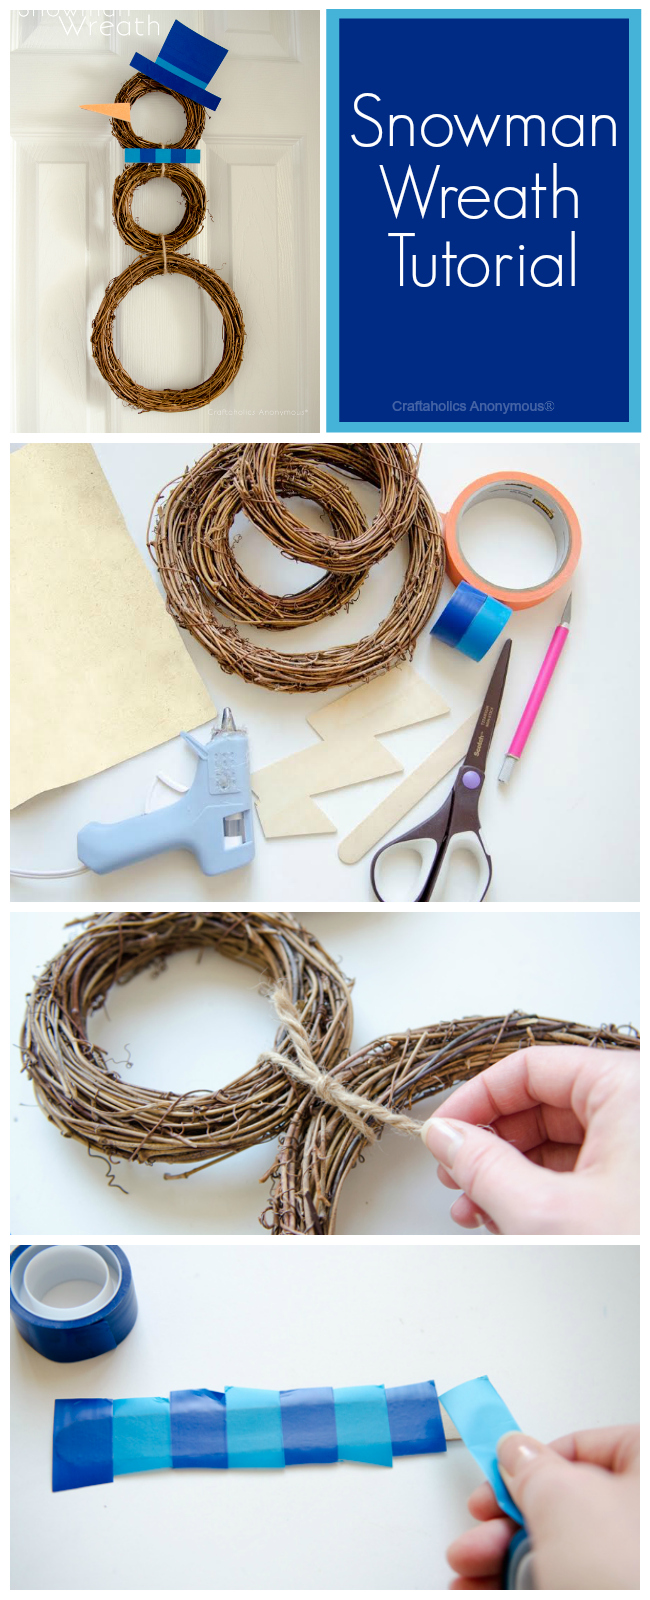 snowman wreath tutorial